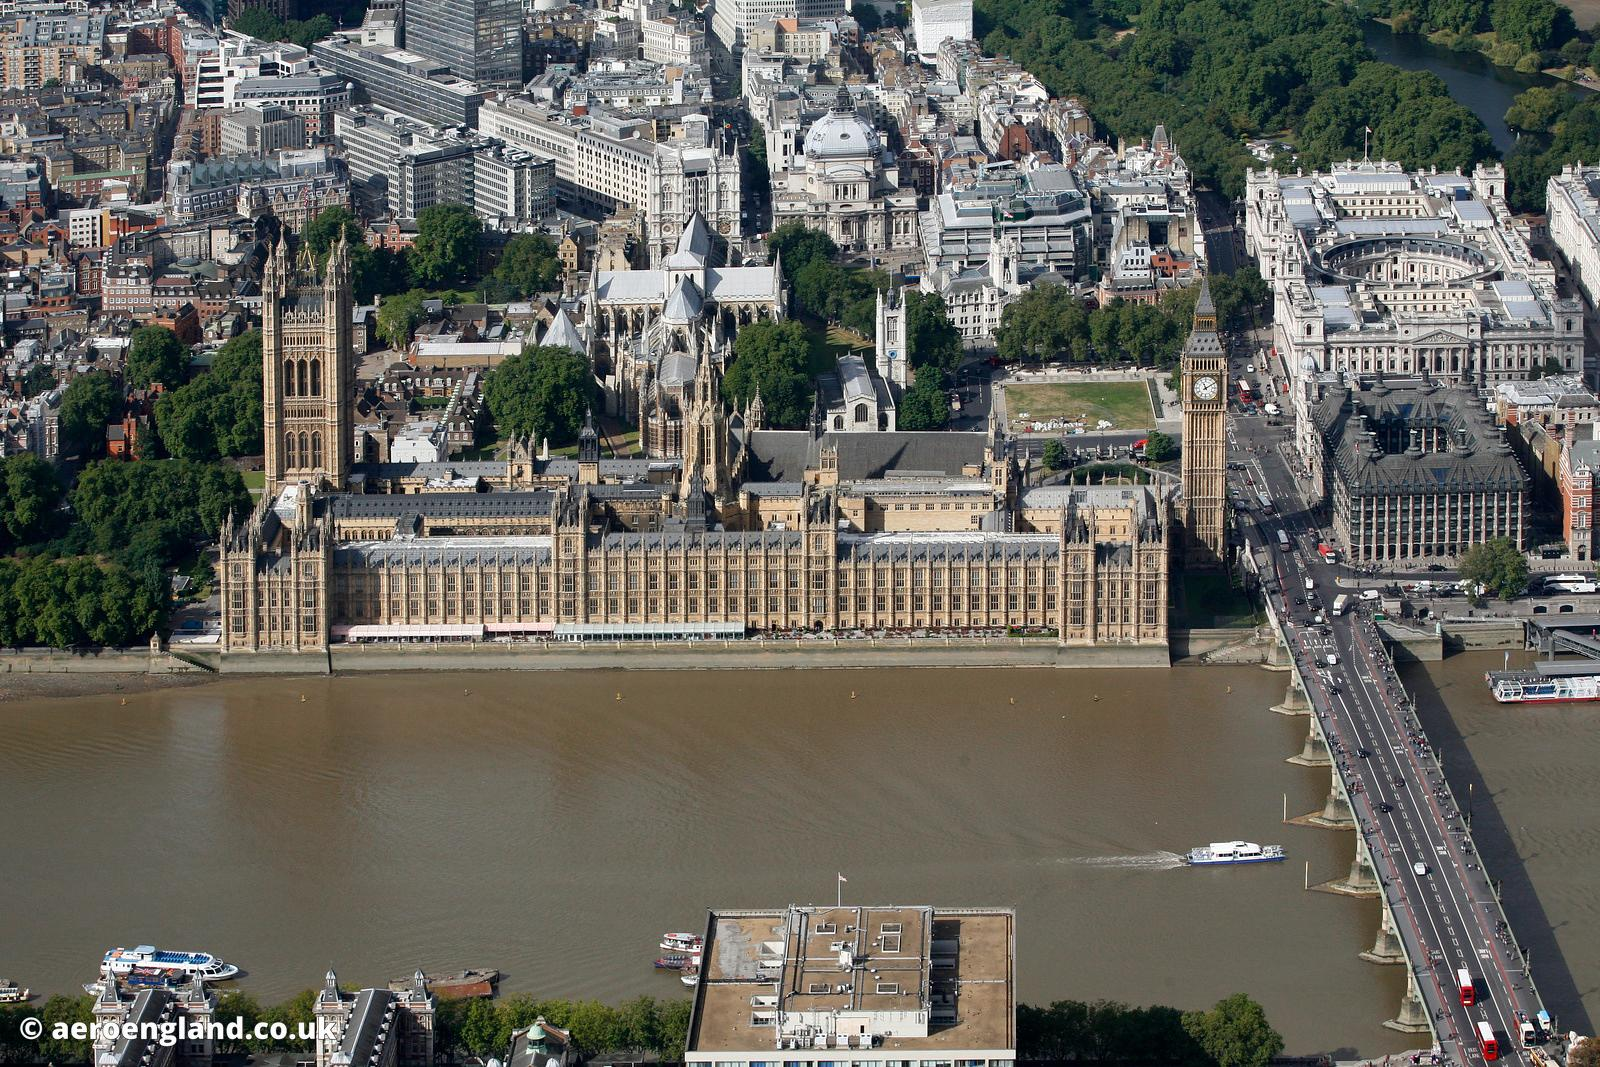 aerial photograph of the Houses of Parliament Westminster  London England UK SW1A 0AA including the House of Commons and the House of Lords